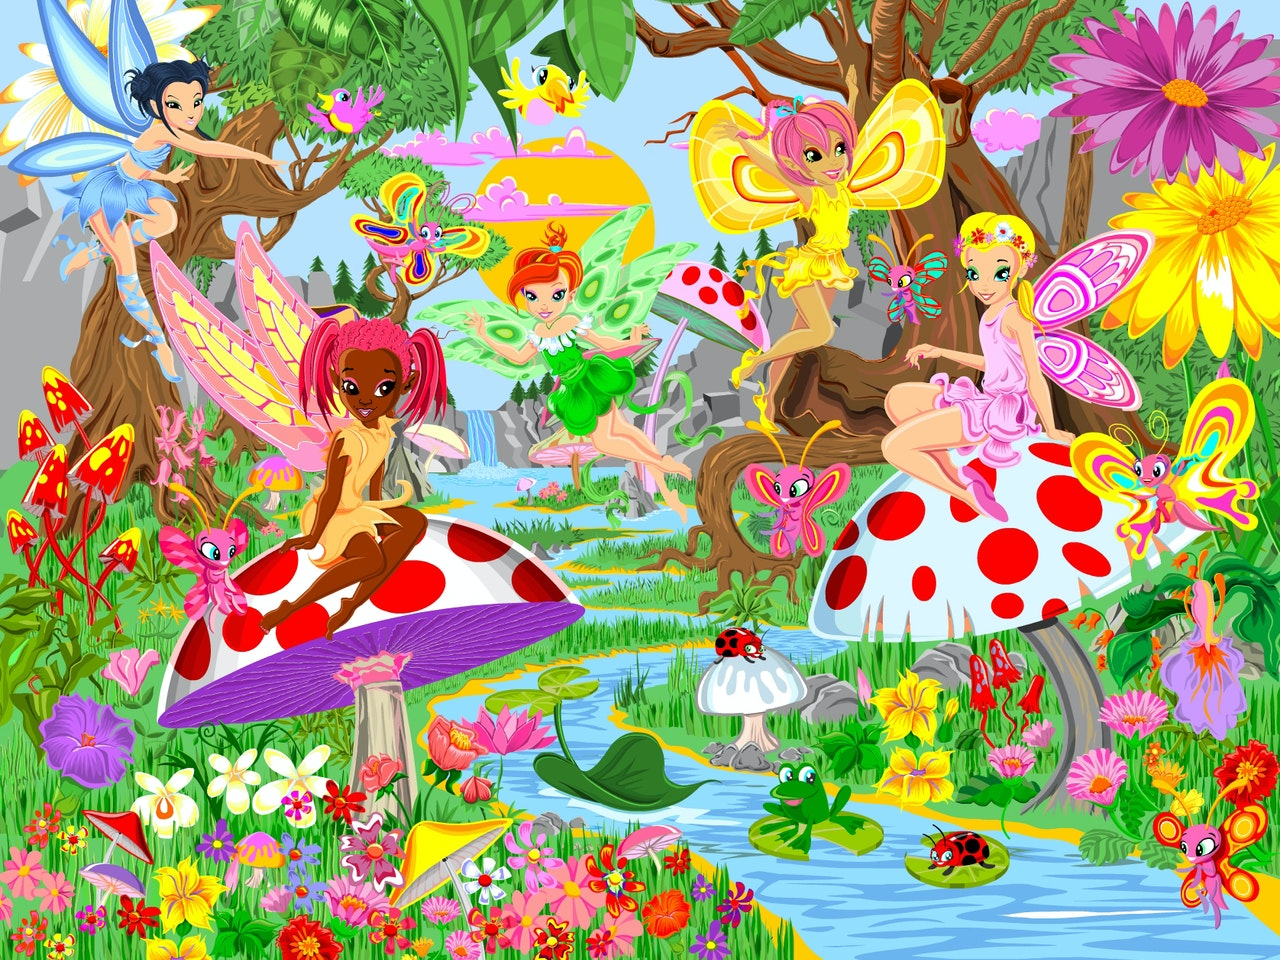 cute fairy fairies in a magic fantasy fairy tale forest